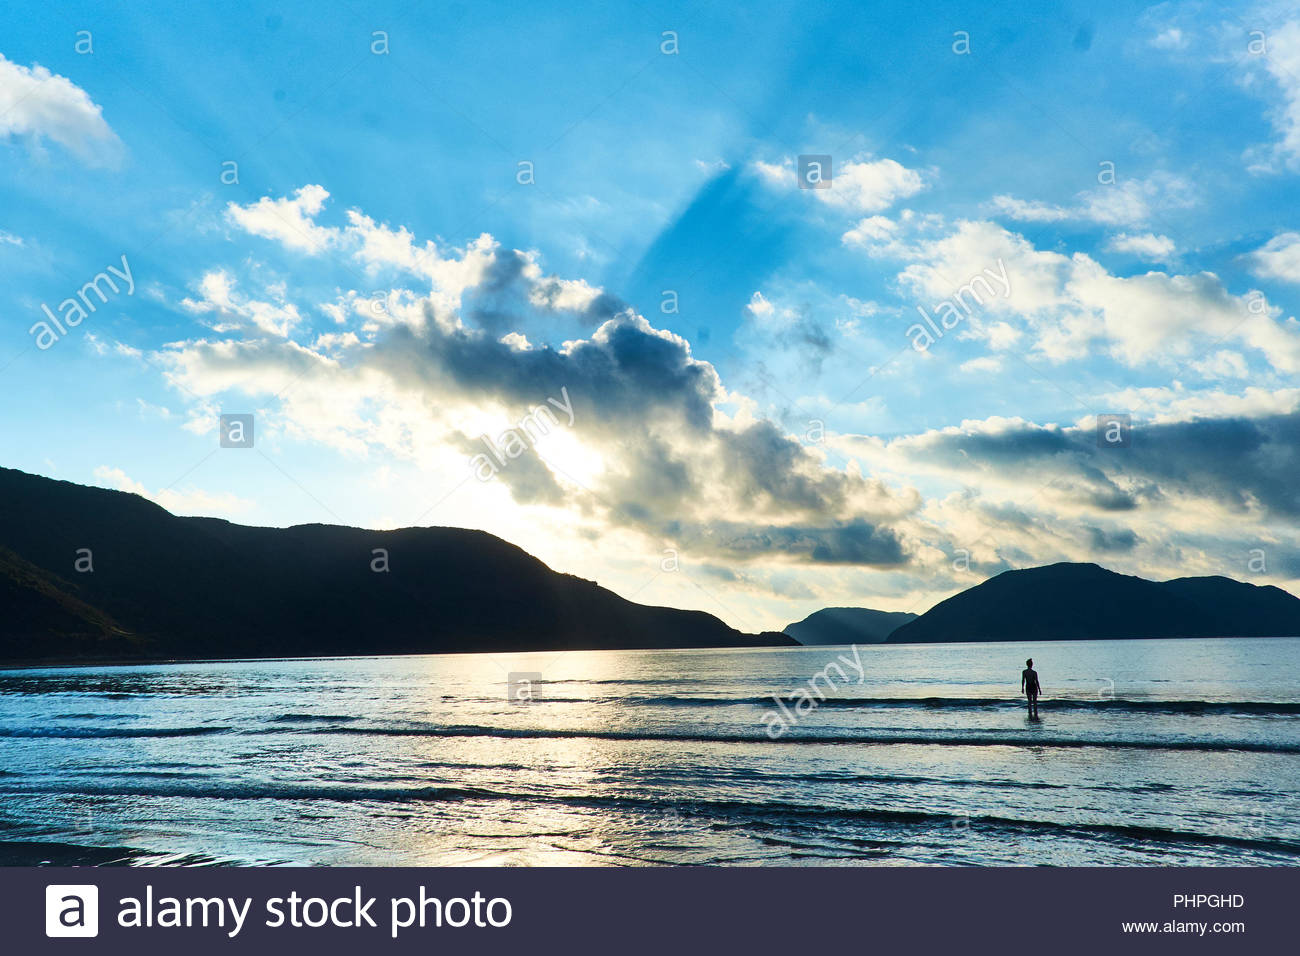 Silhouette of woman on beach at sunset - Stock Image